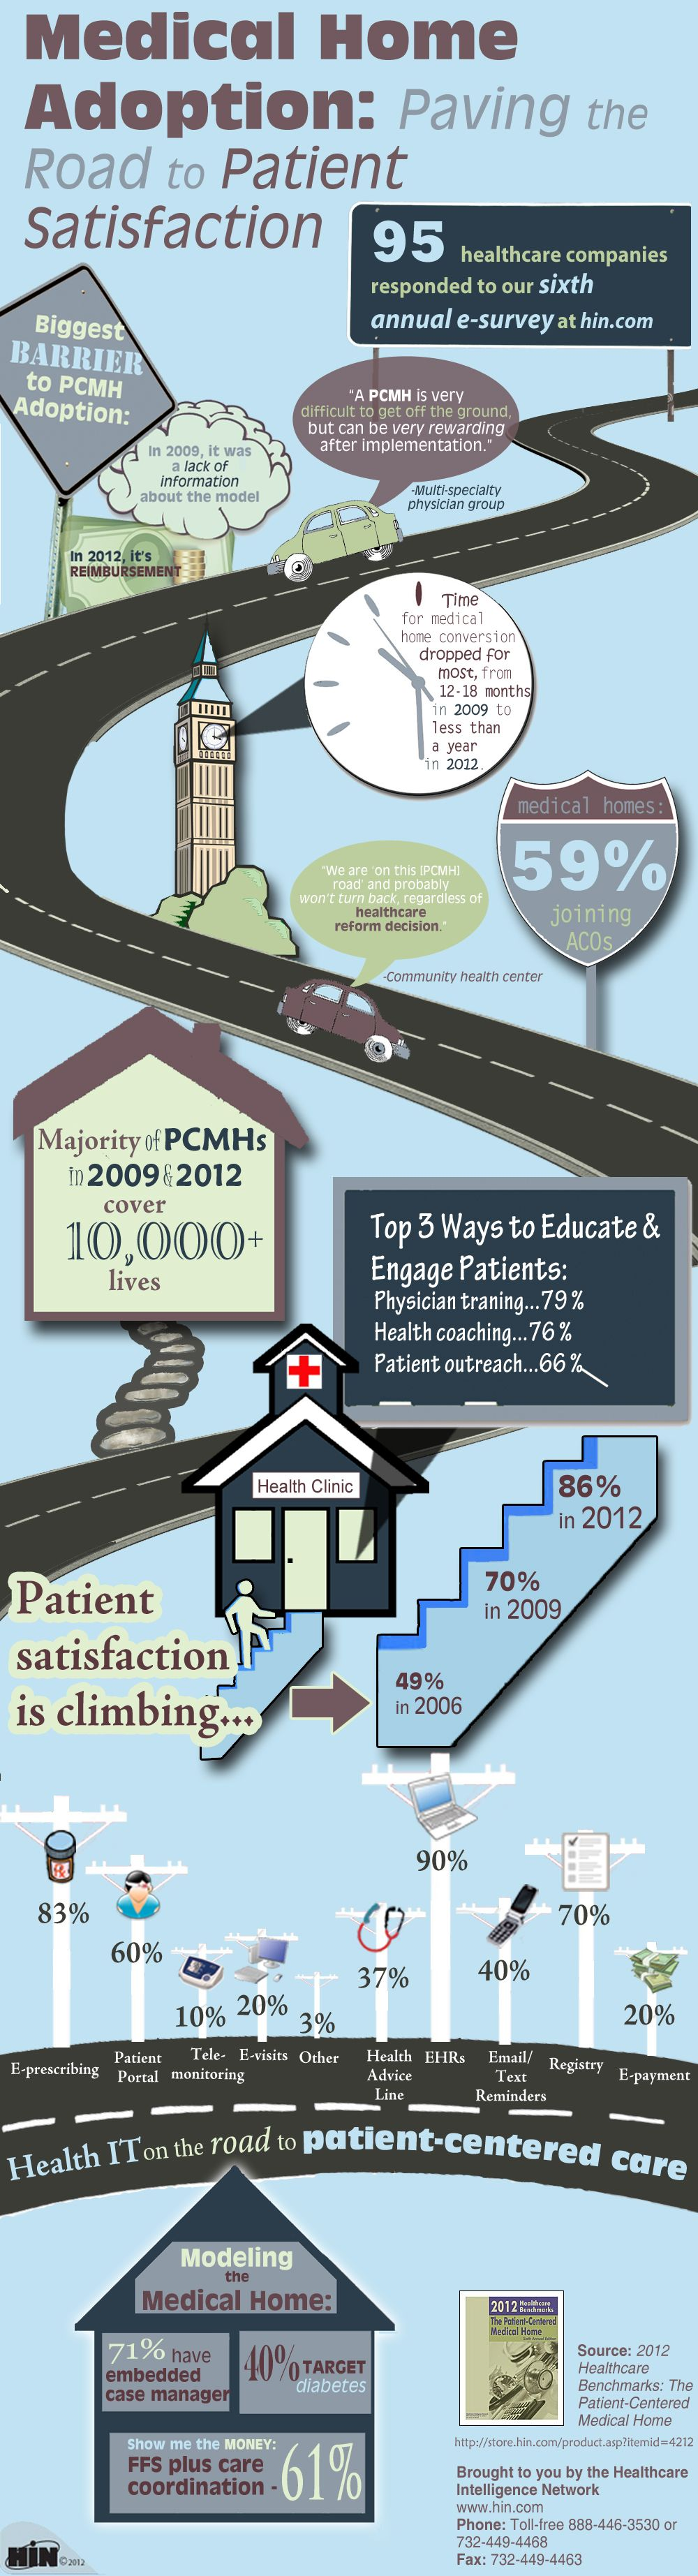 Ncqa patient centered medical home model